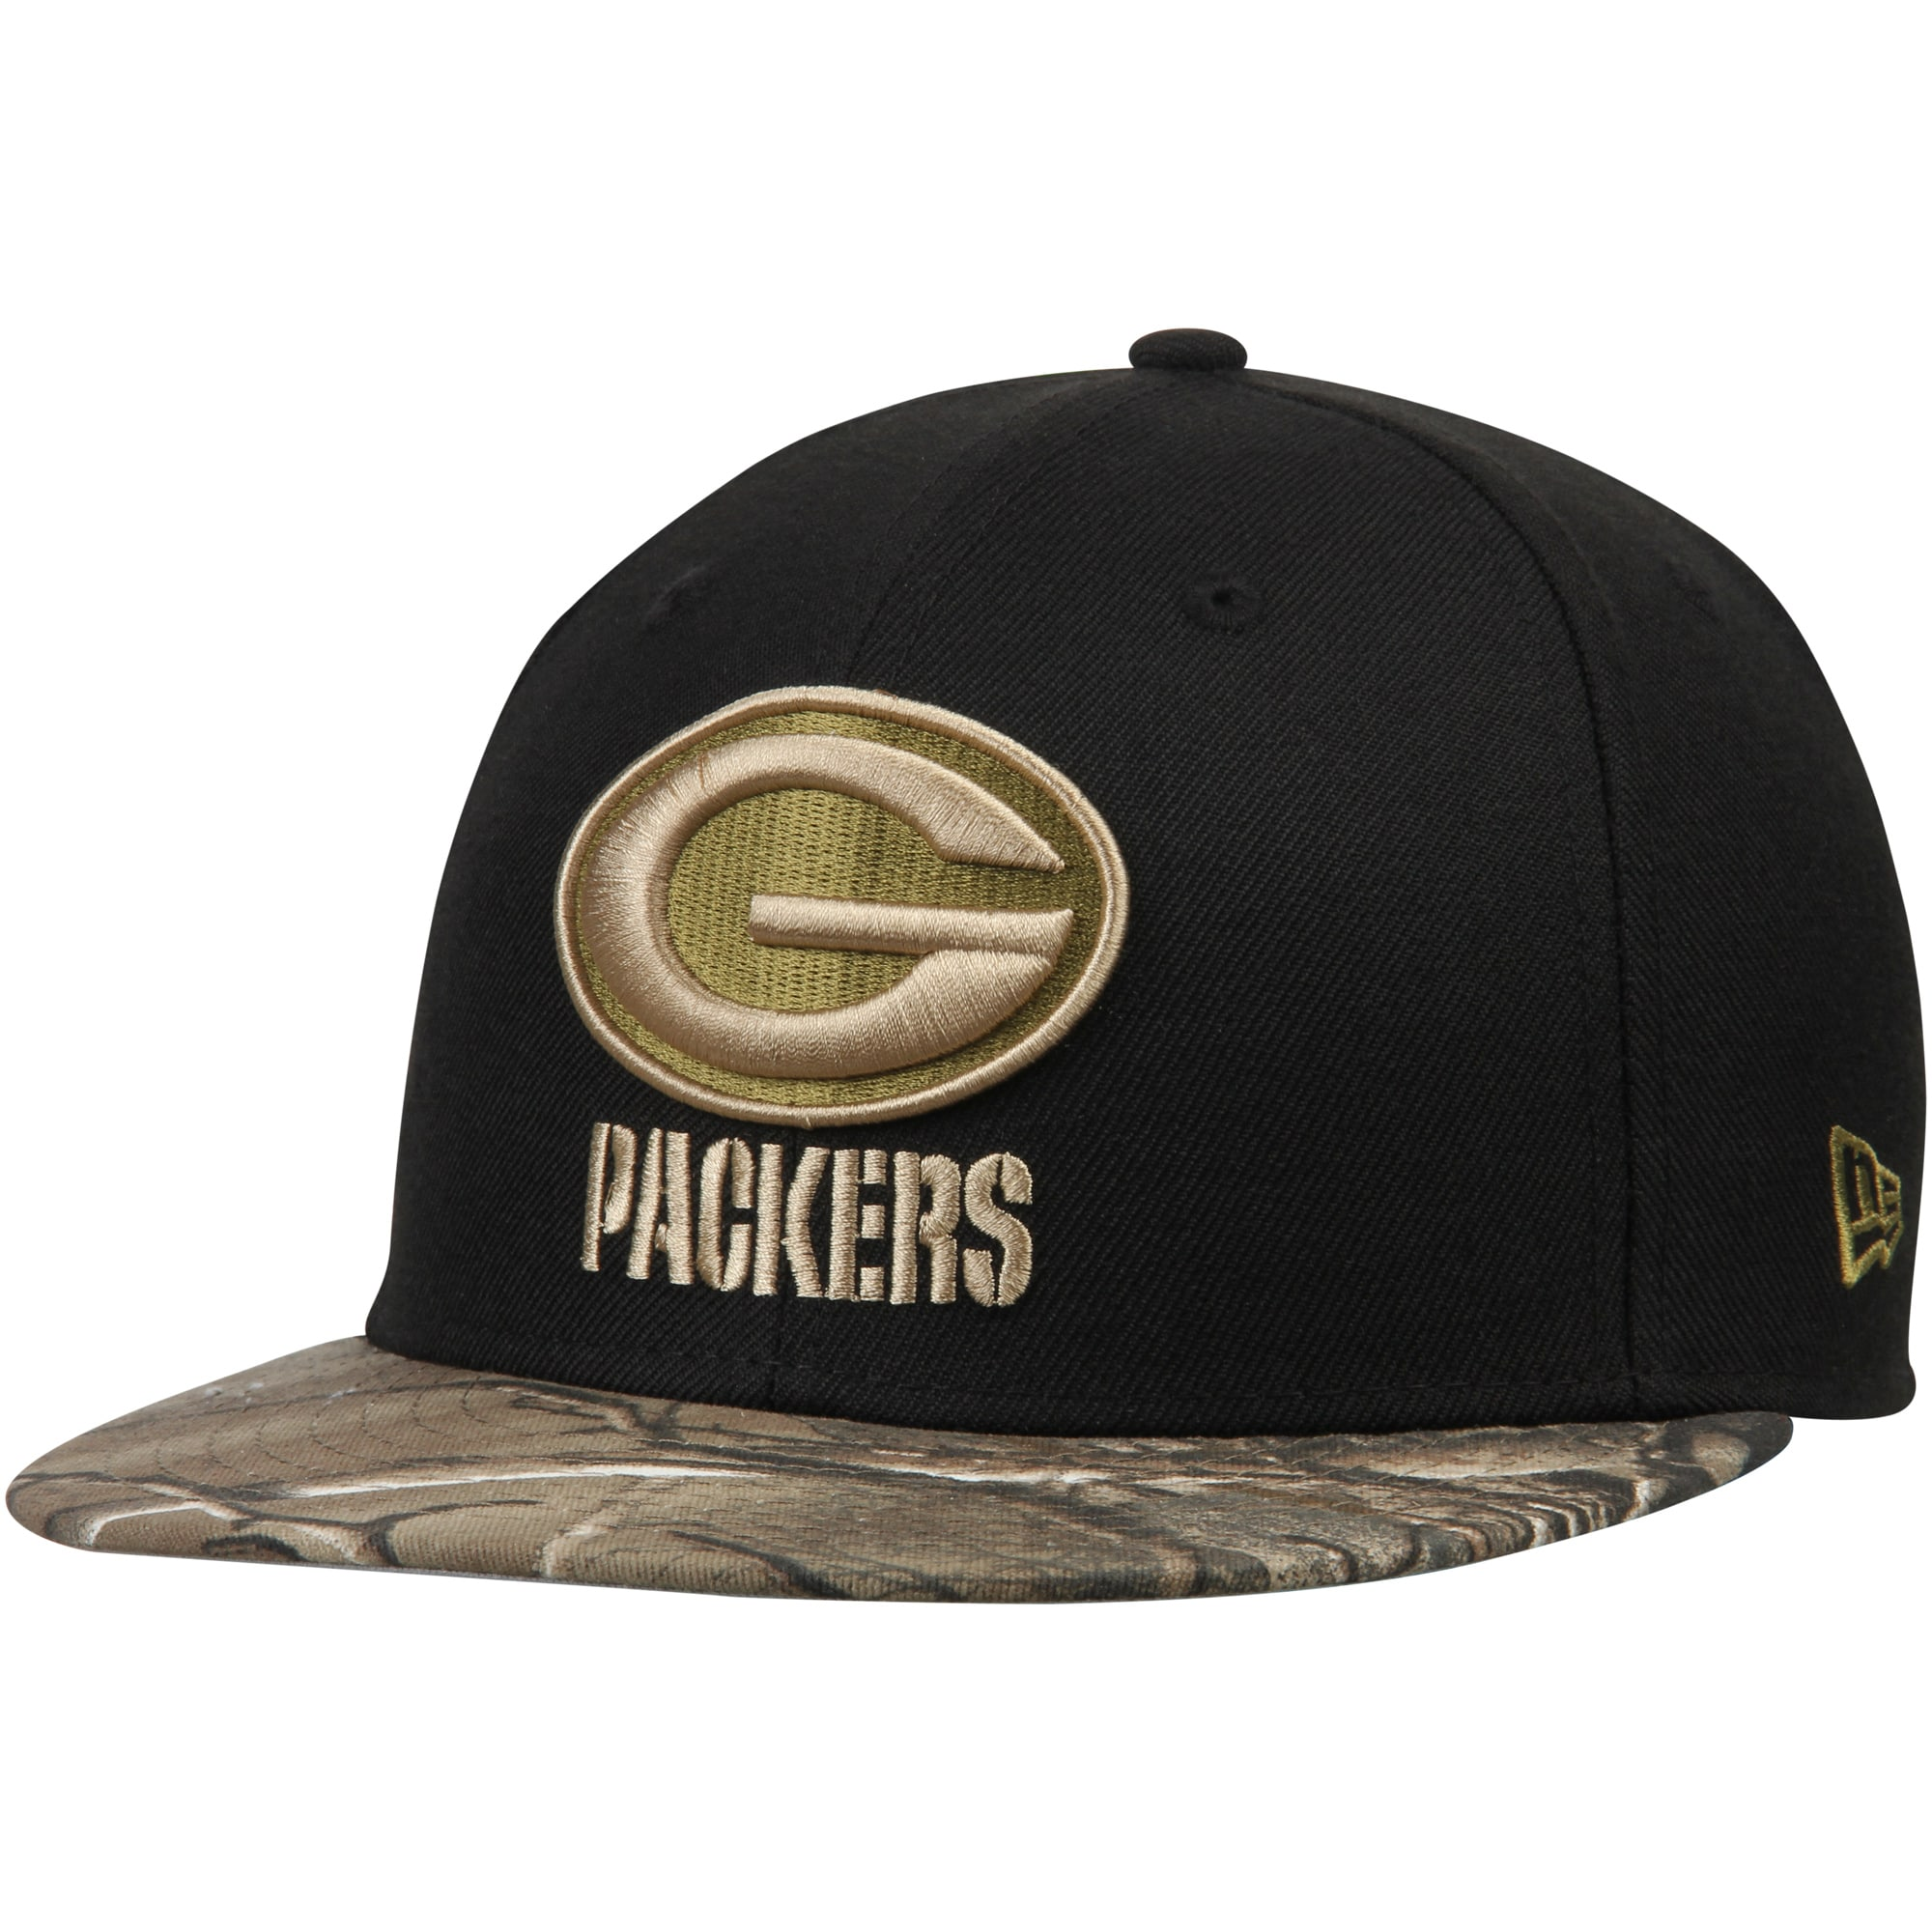 Green Bay Packers New Era Rambo 59FIFTY Fitted Hat - Black/Realtree Camo